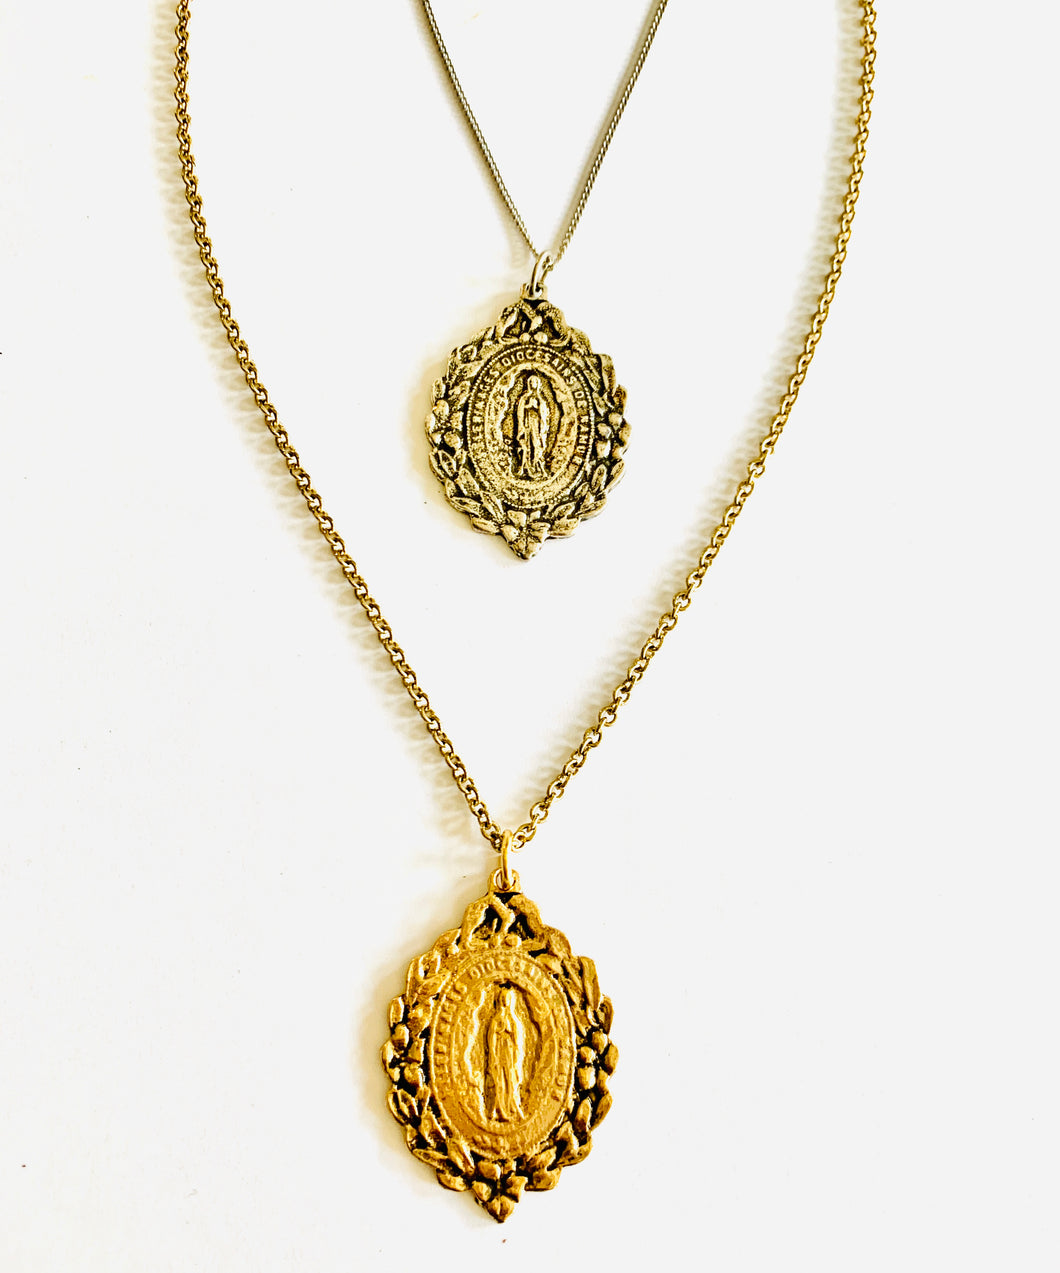 Lovely Religious Pendant Necklace